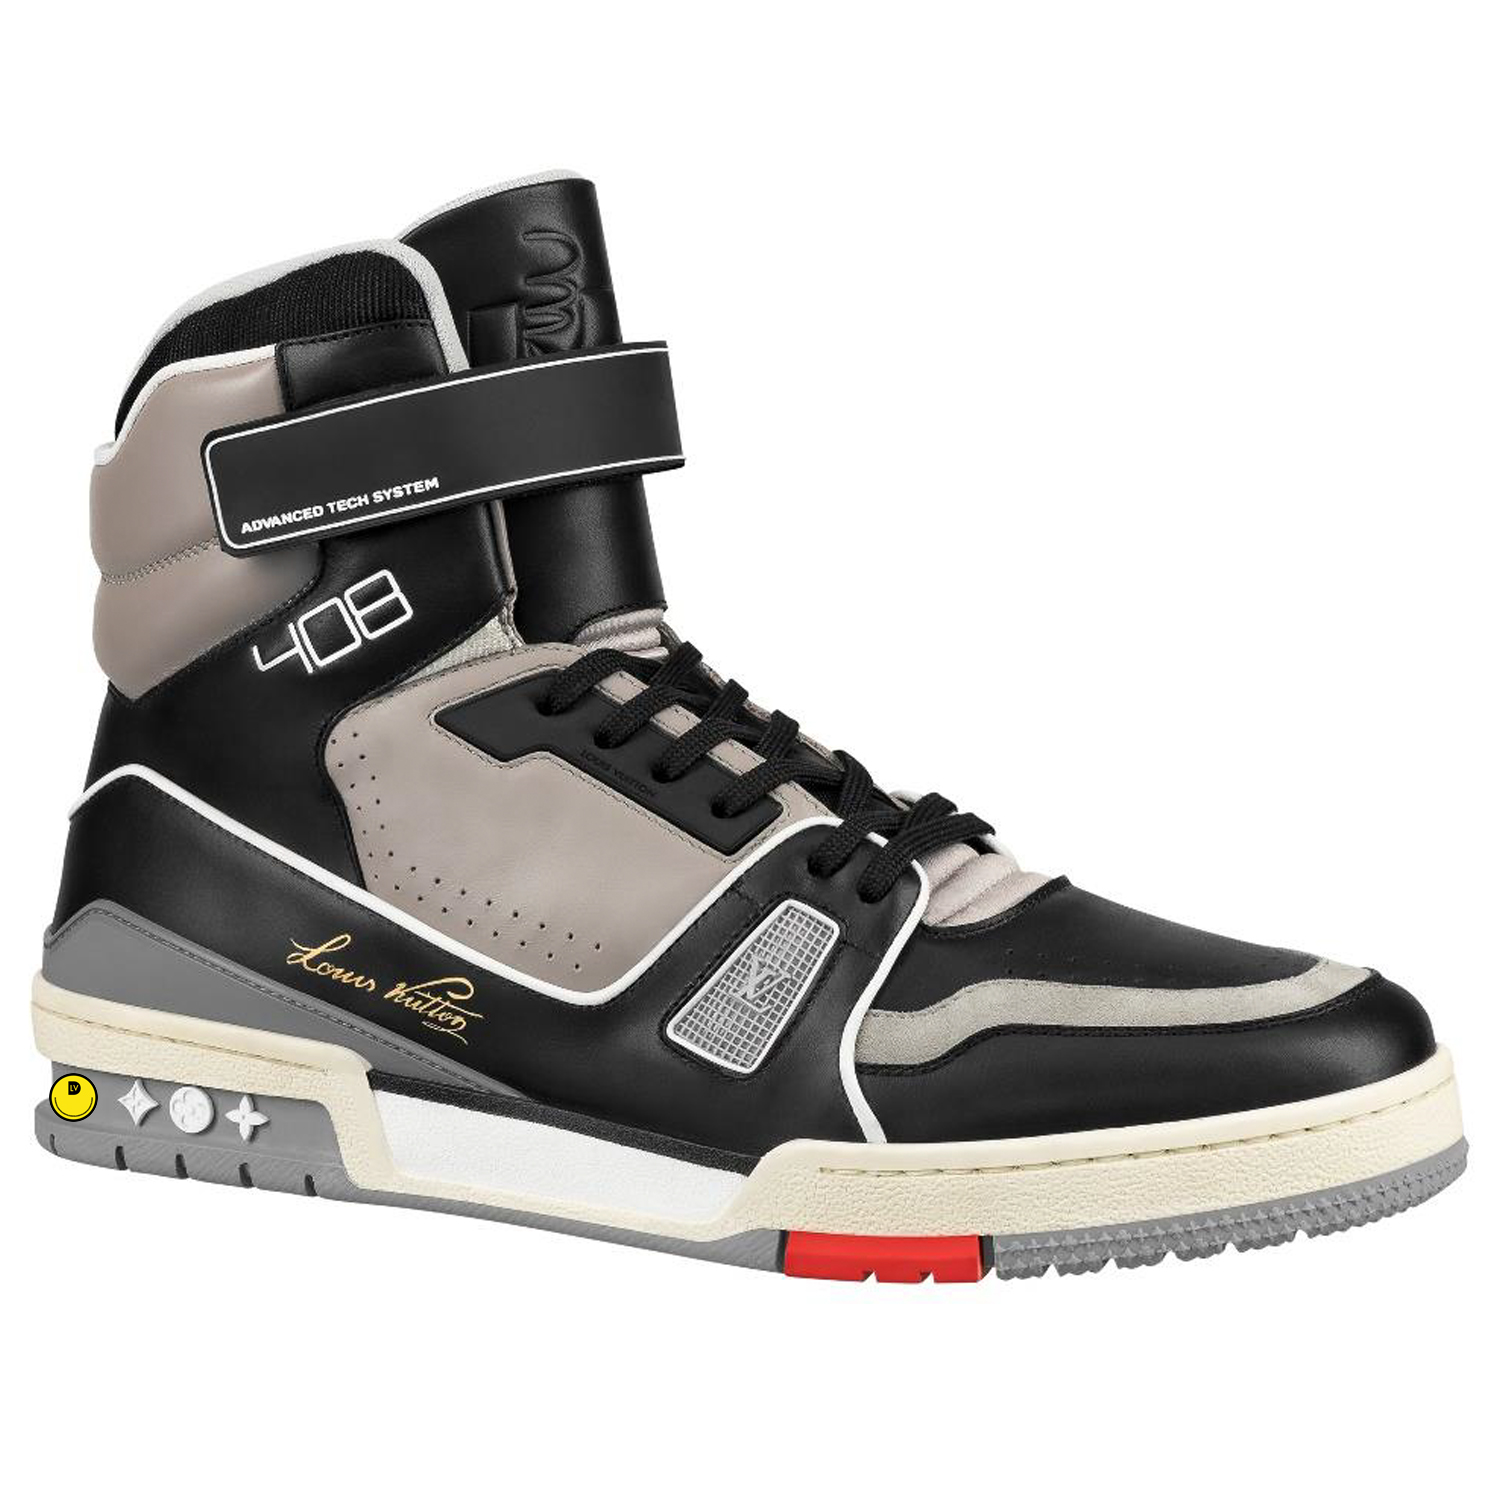 HIGH TOP SNEAKER - €1200 $16001A54ILNOIR